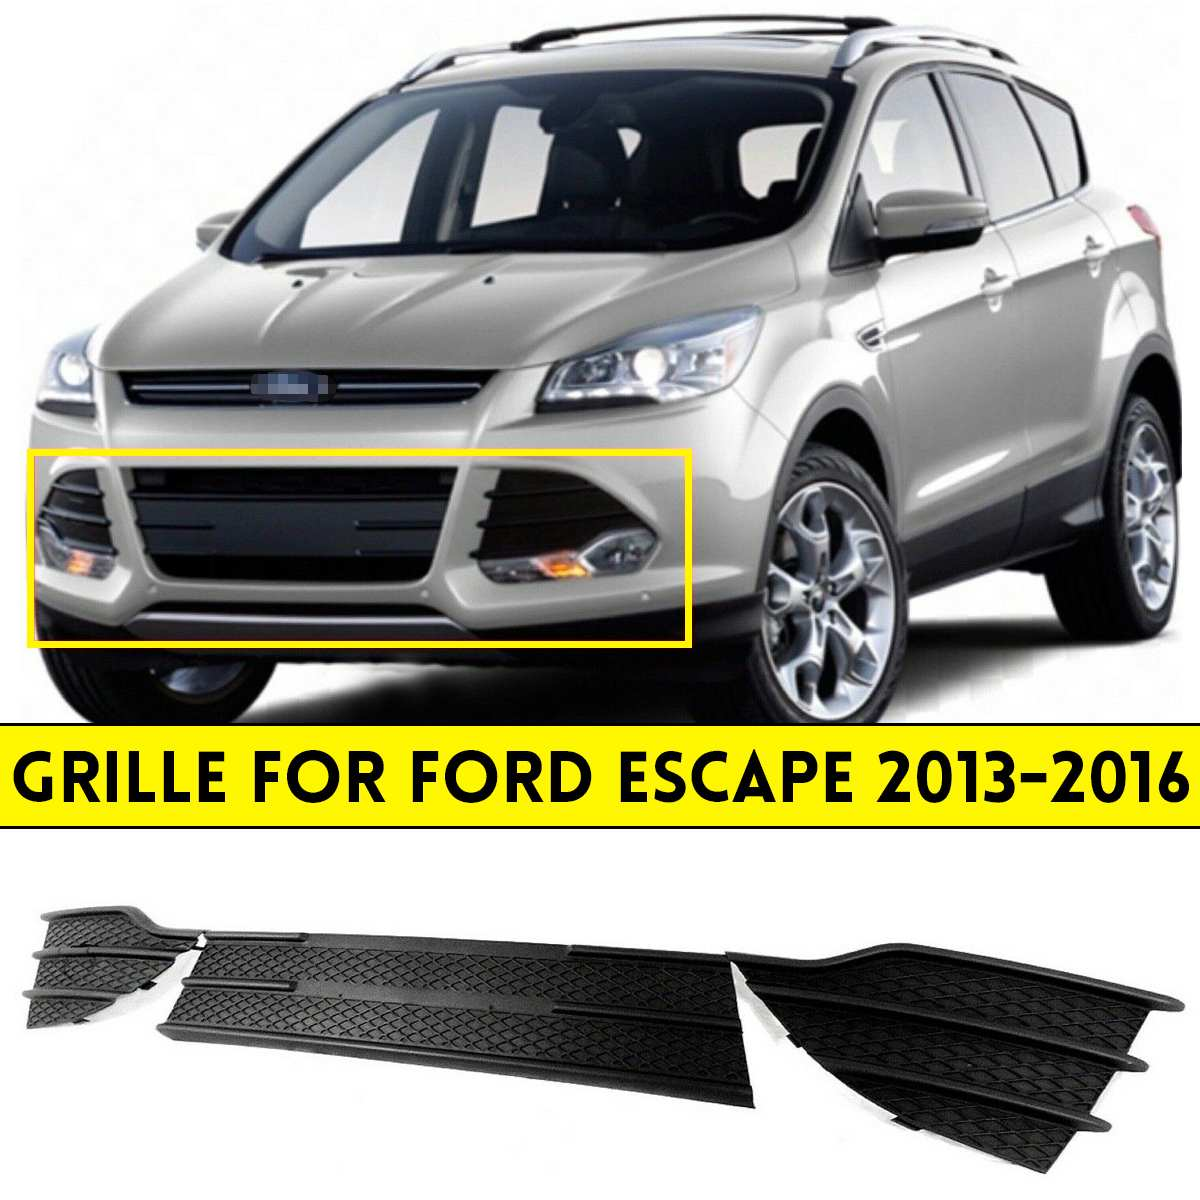 NEW 3 Pcs Set Black Front Left Right Bumper Grille Cover Grille Grill Triangular Grill For Ford Escape 2013 2106 Racing Grills     - title=